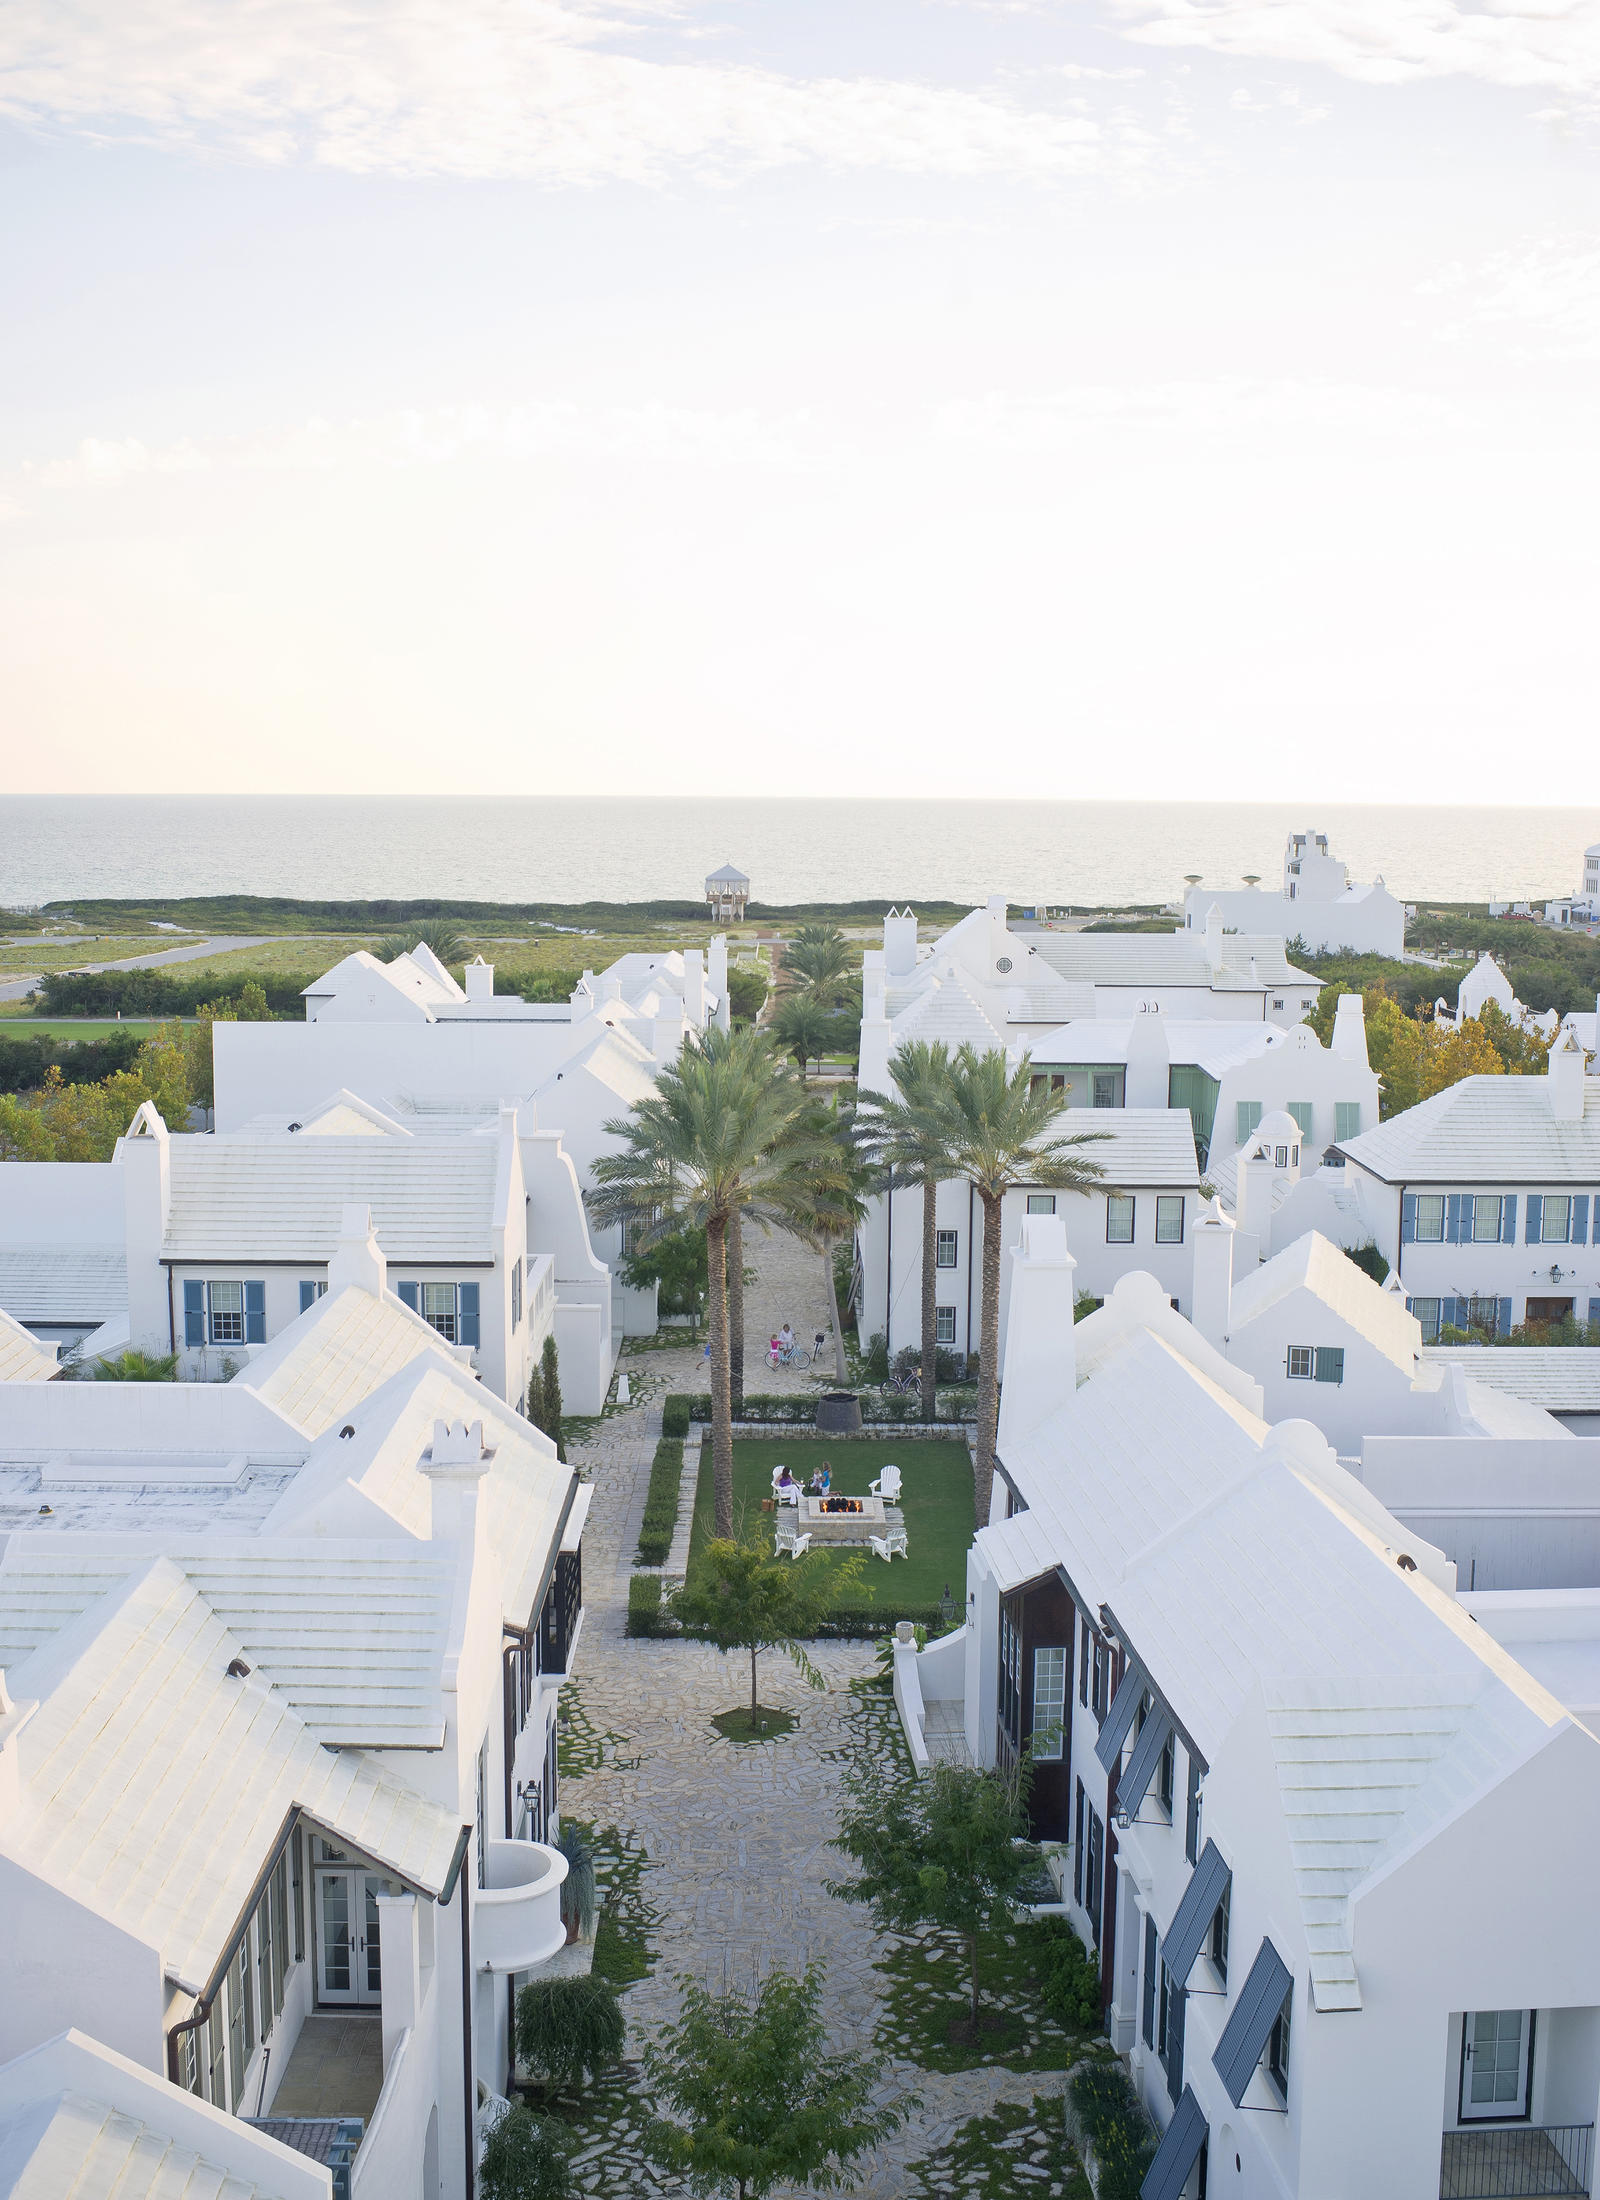 Lifestyle Photography | Atlanta, GA | Two rows of houses on the beach front.